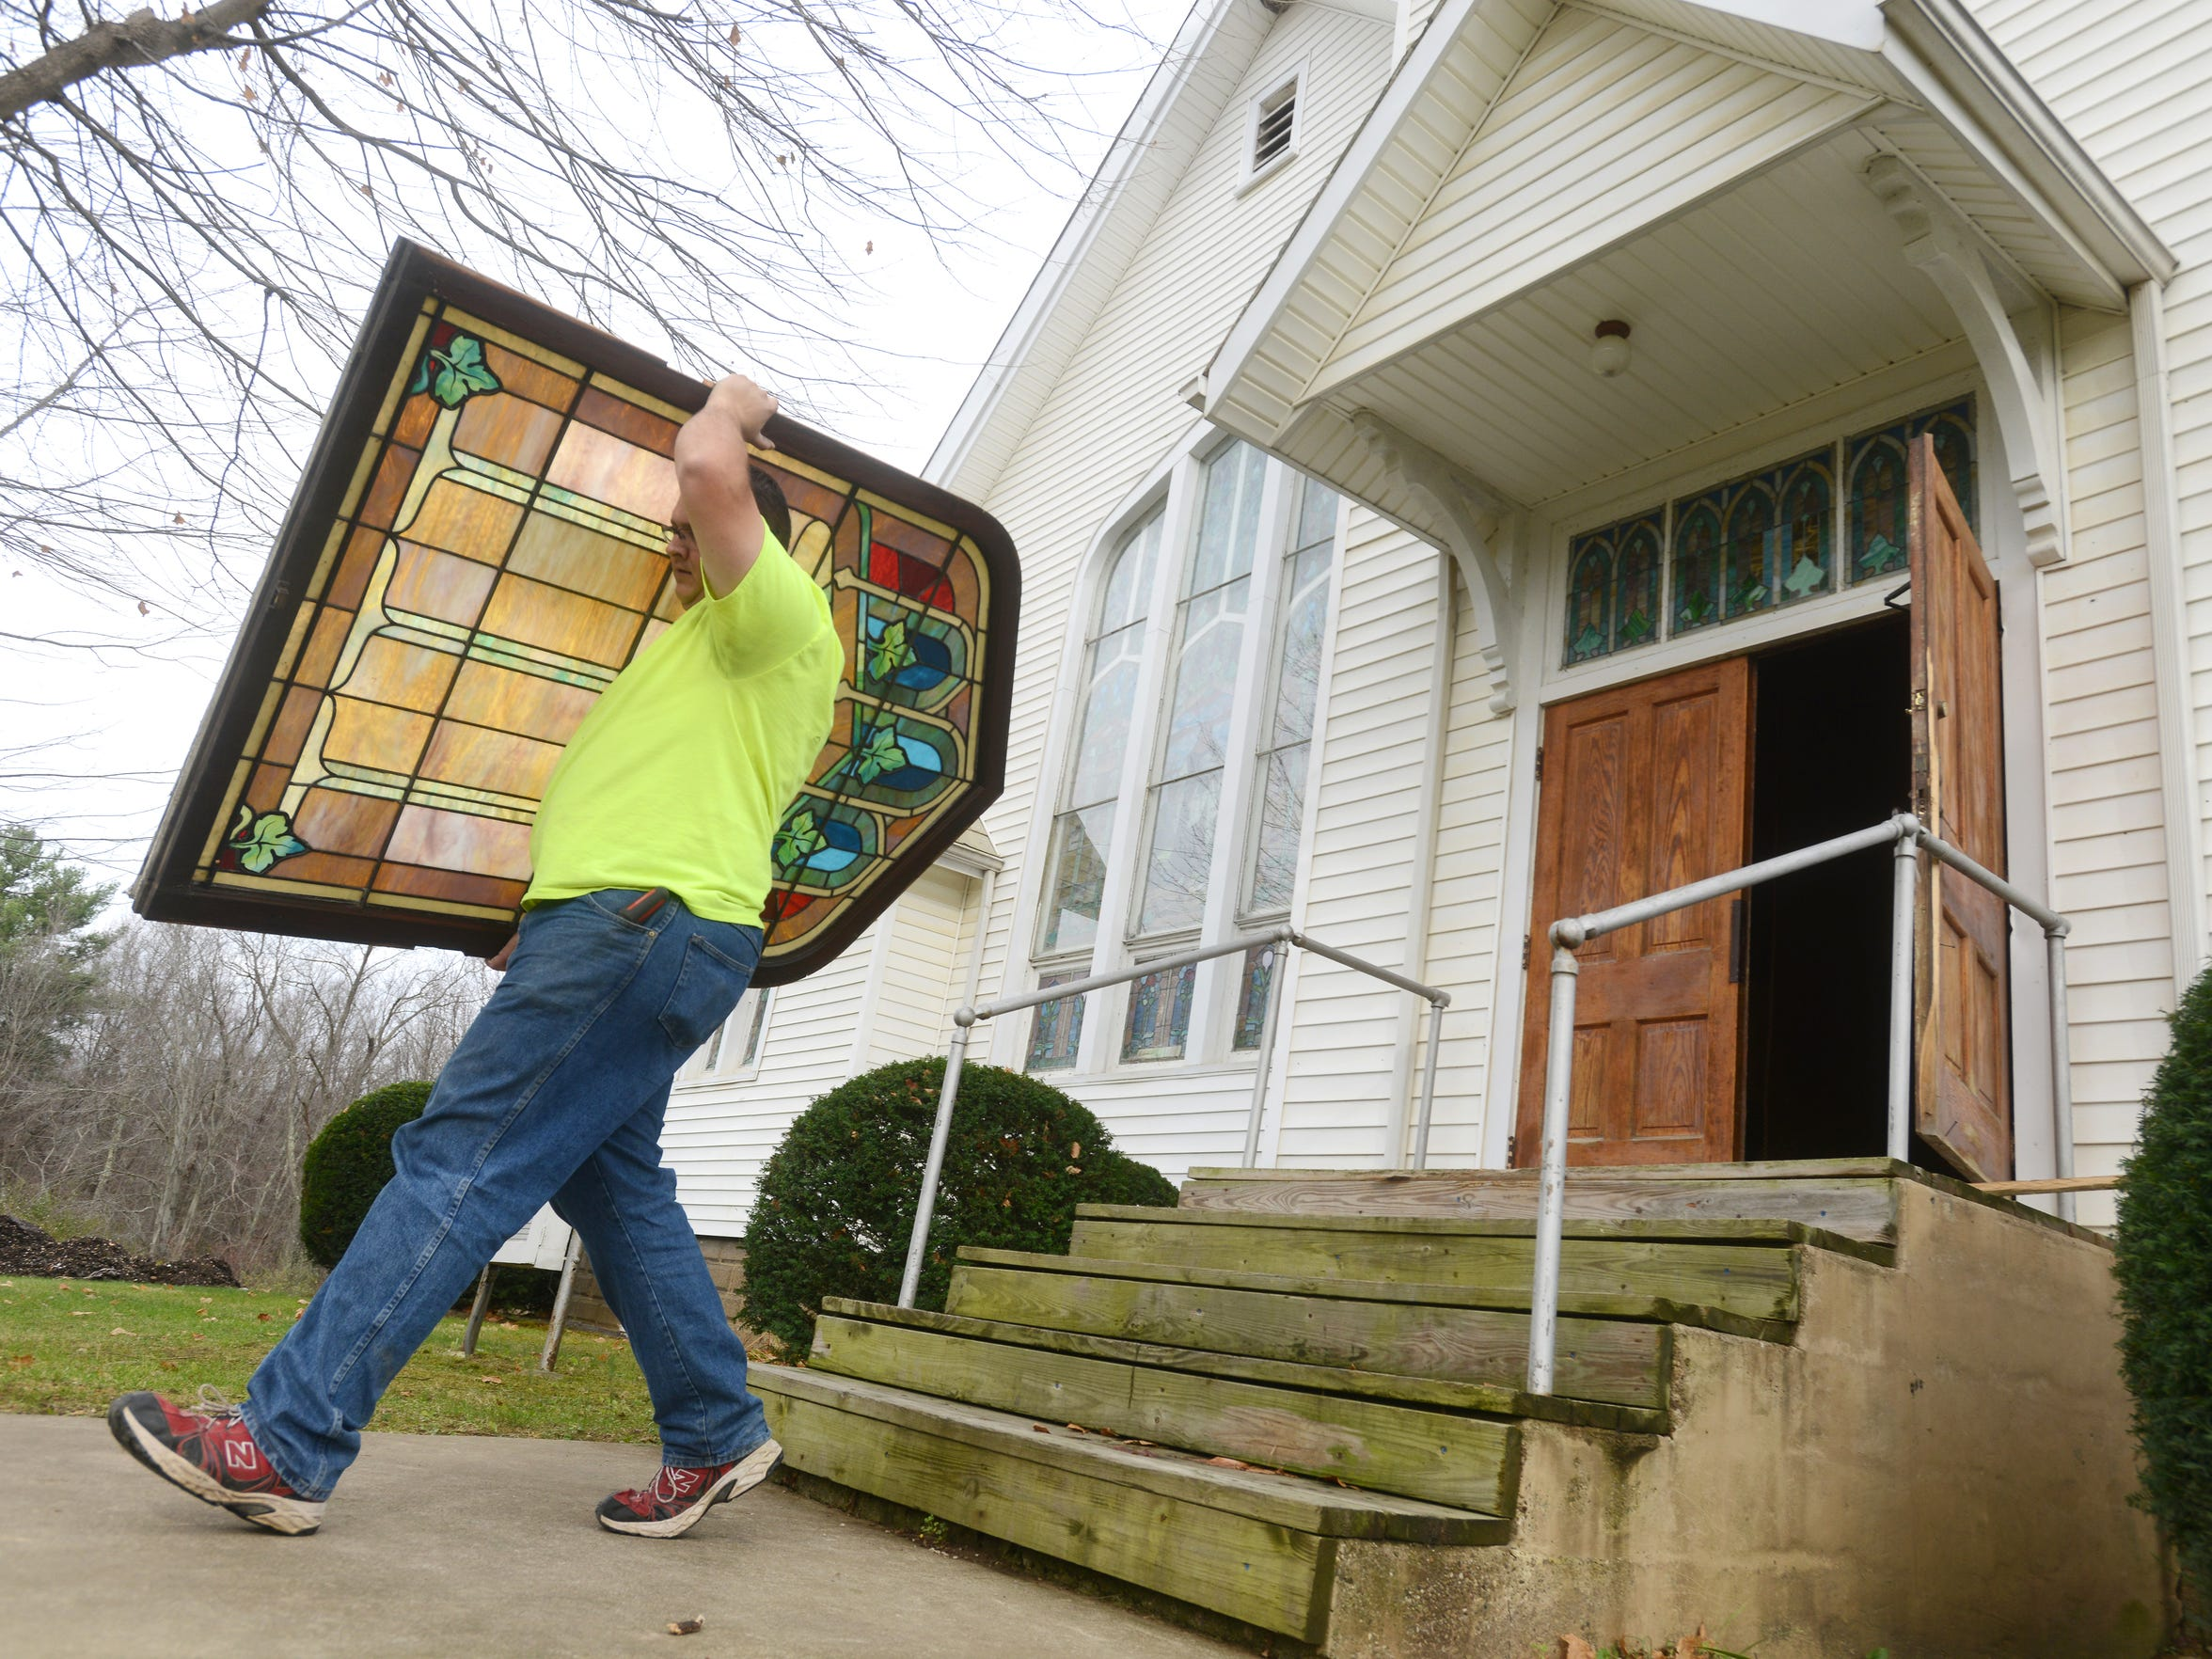 Bryan Hamilton carries a stained glass window from Zion Lutheran Church. The stained glass, organ, pews and other items were removed from the church prior to demolition, and most have found new homes.